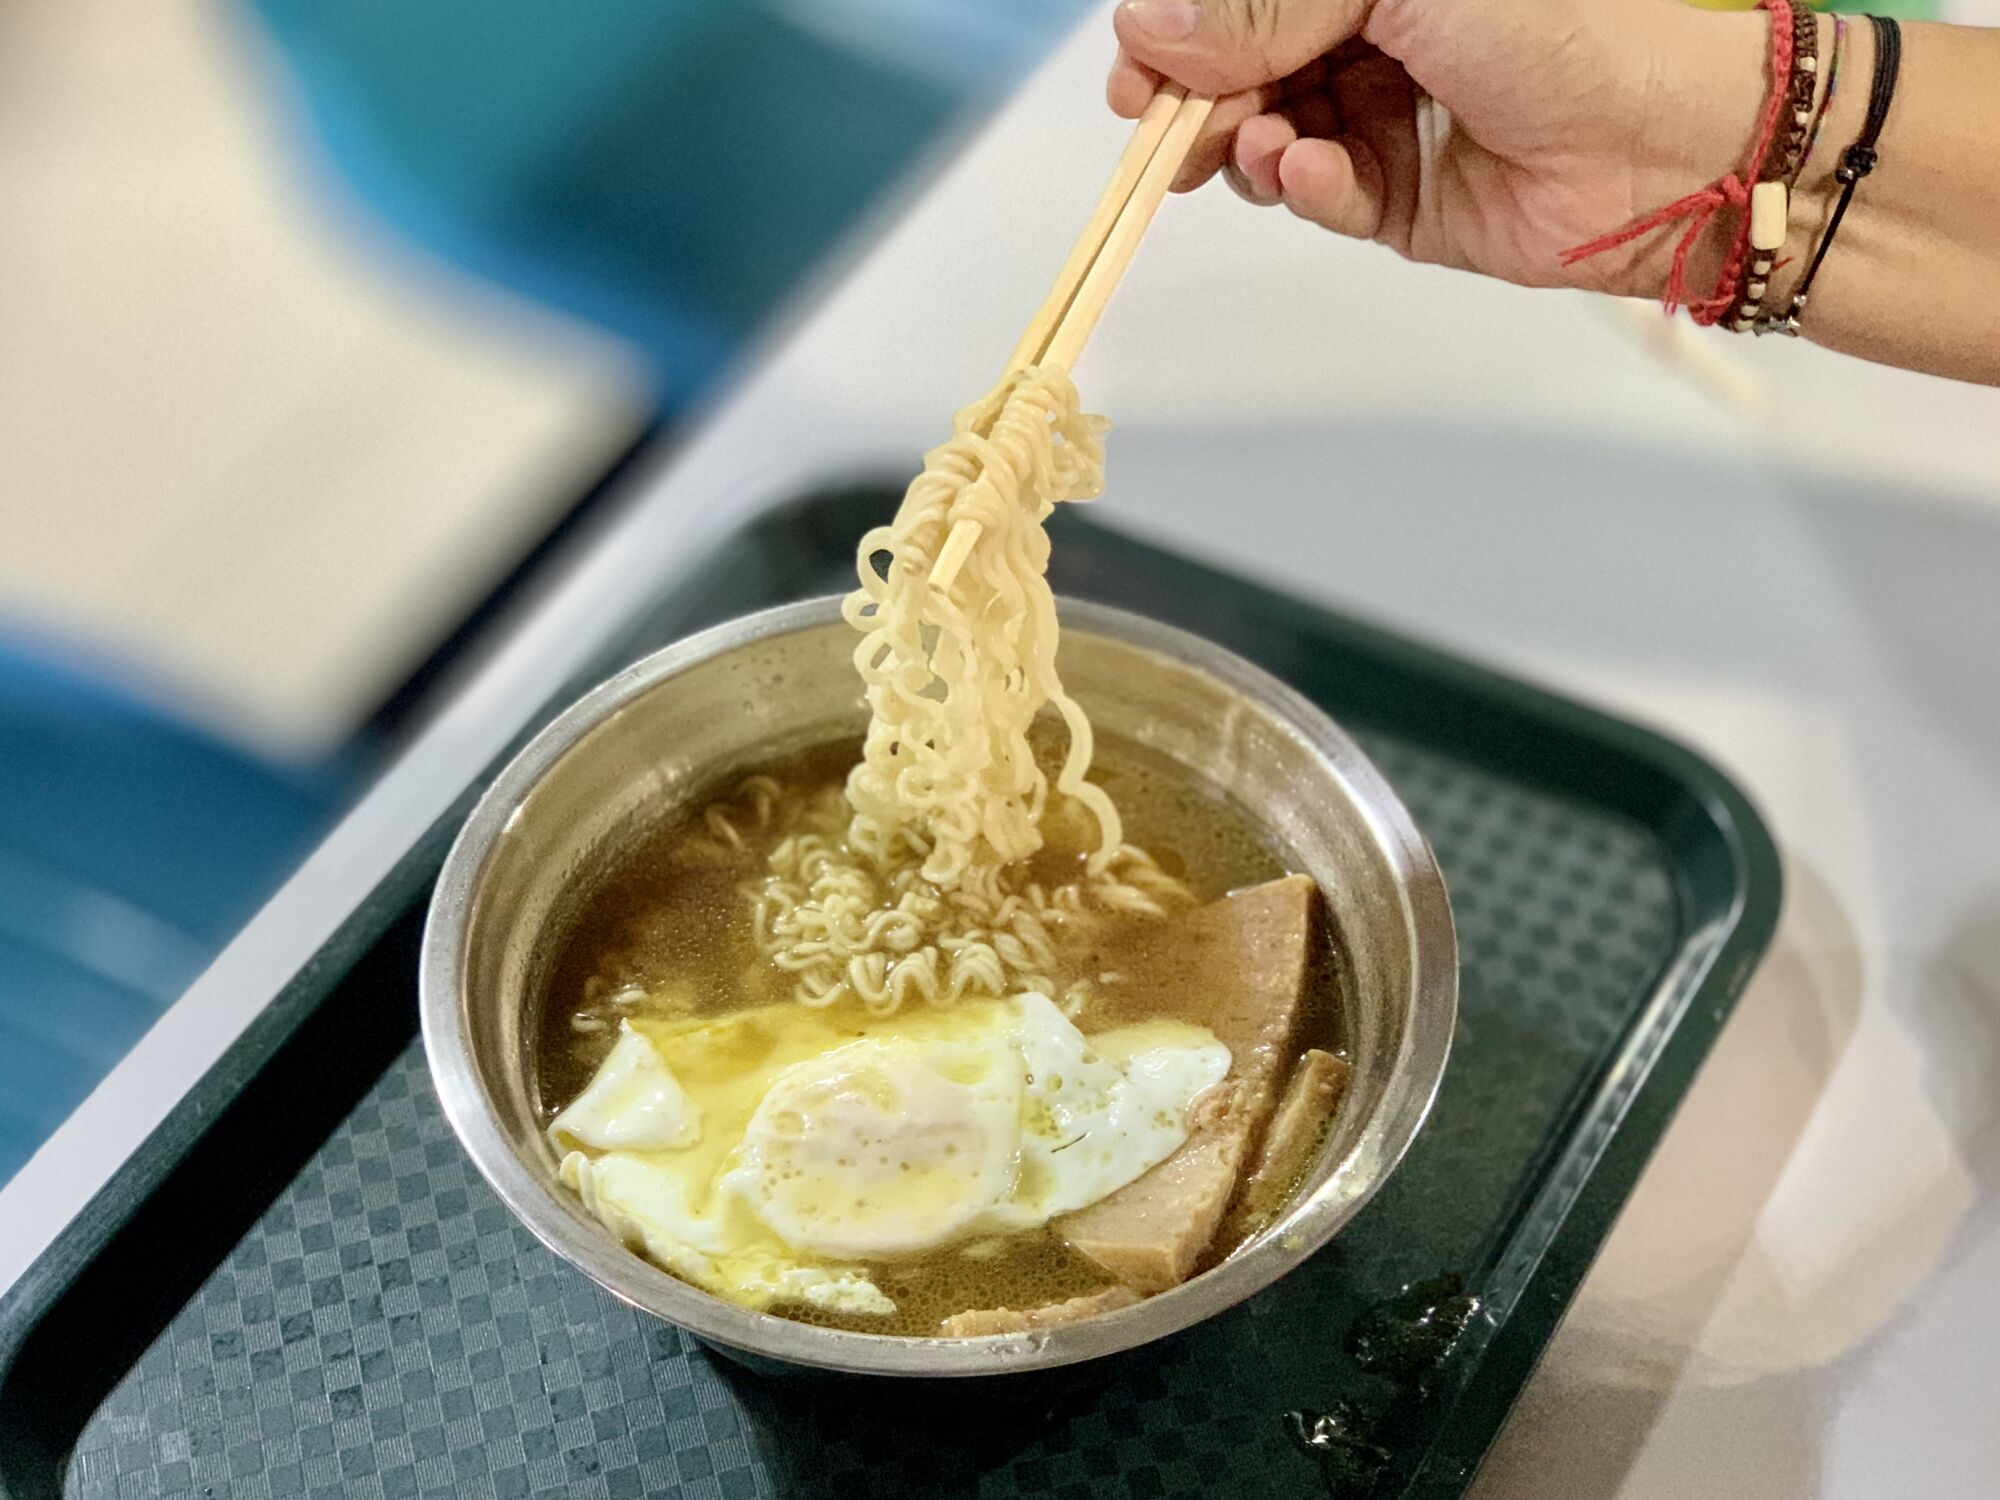 Noodles with Preserved Meat and Egg Iao Hon Market Macau Lifestyle